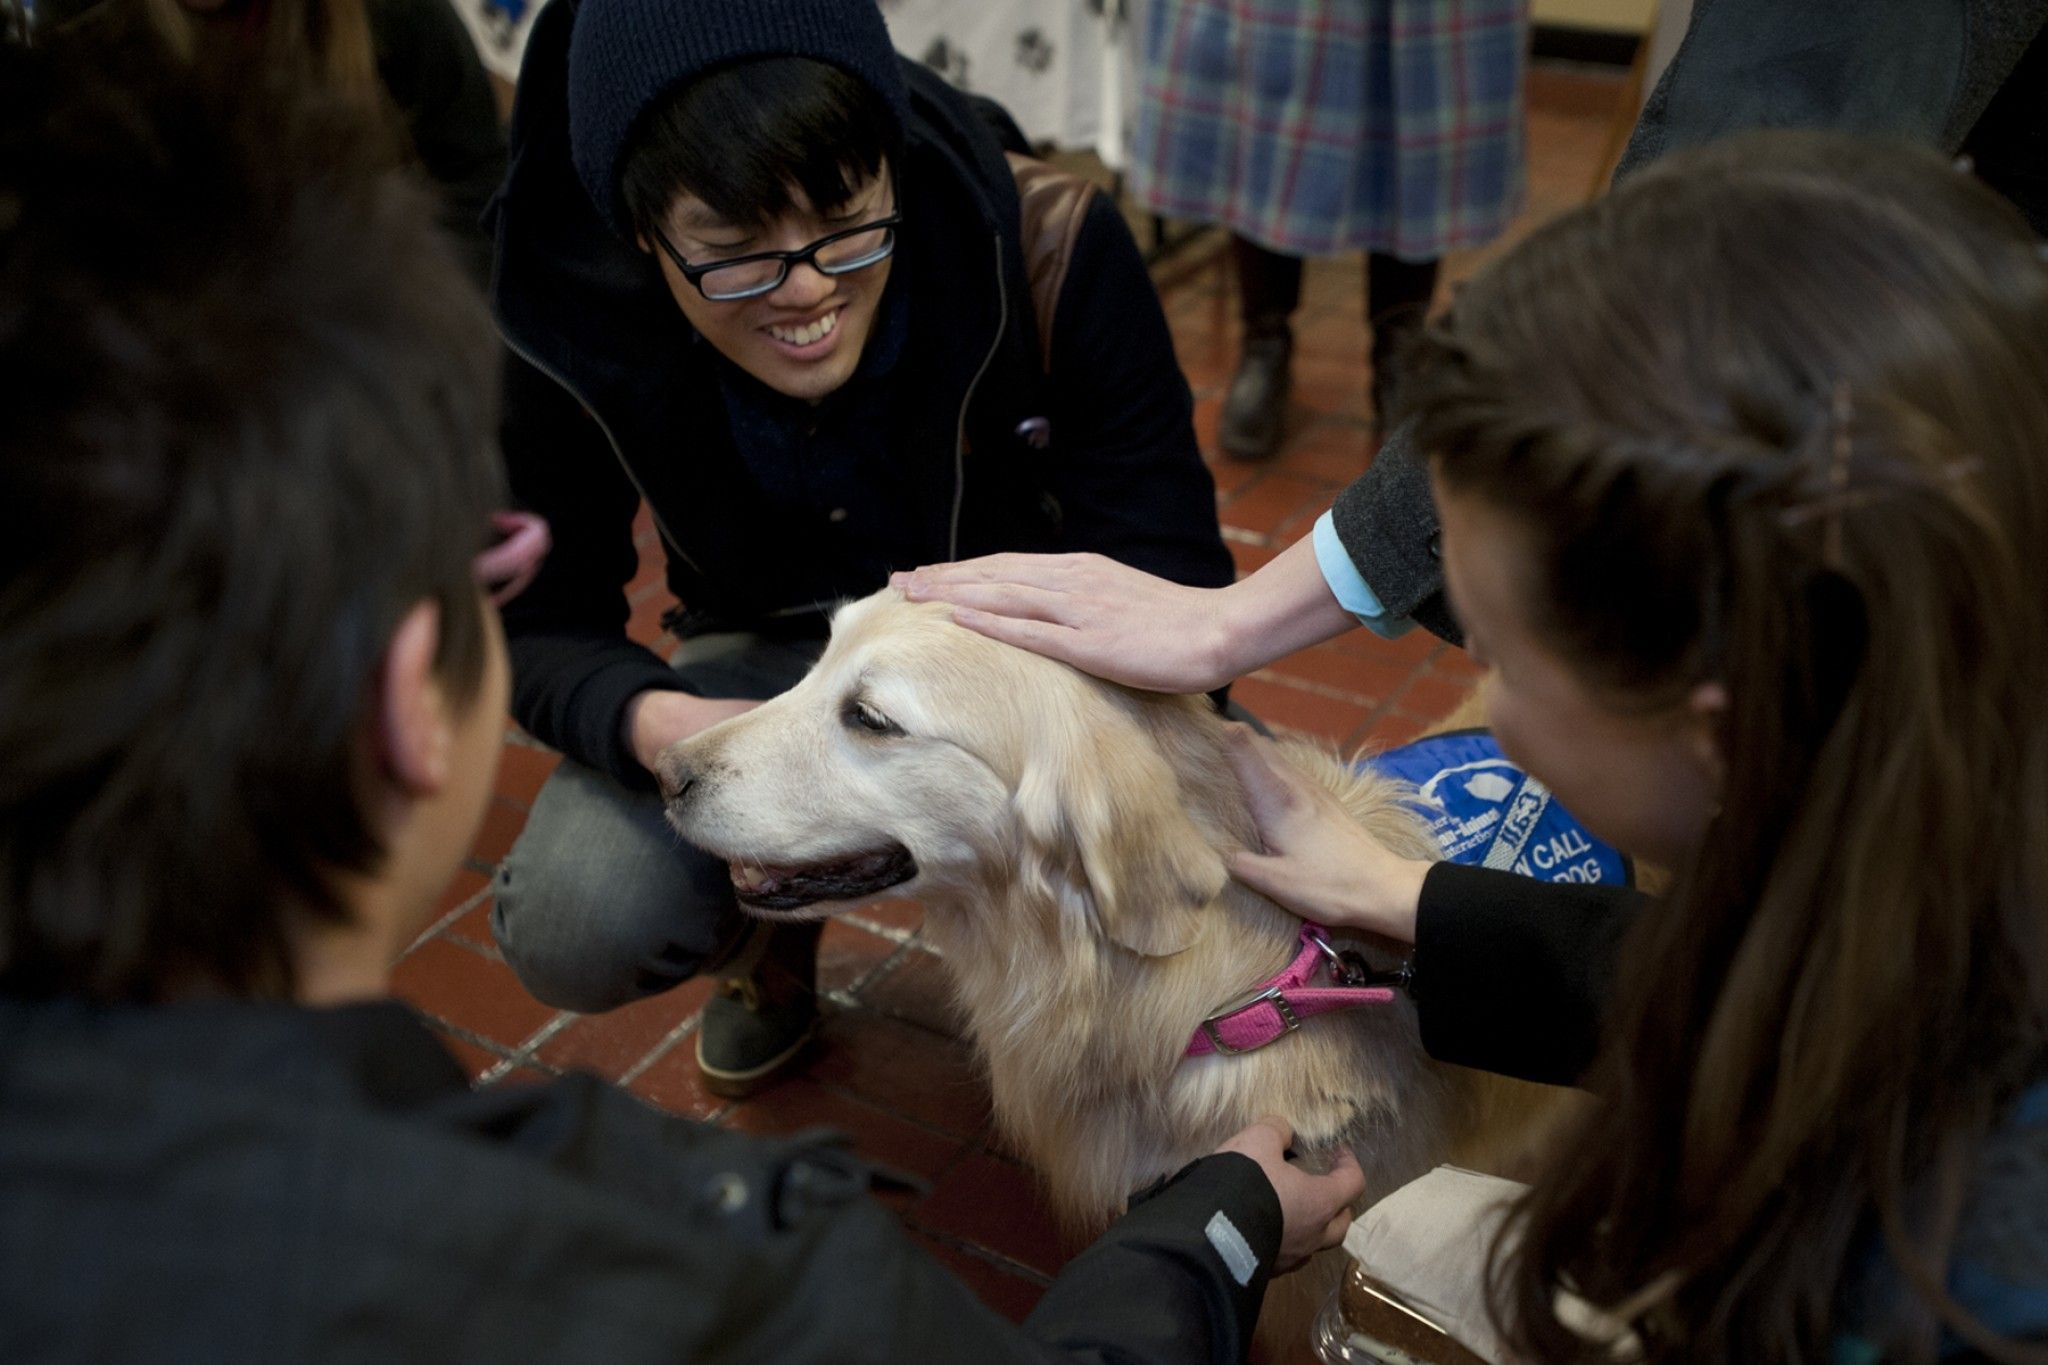 Colleges use dogs to help relieve the stress of finals. Animals can be good for the heart, too. (Washington Post, Dec 2014)